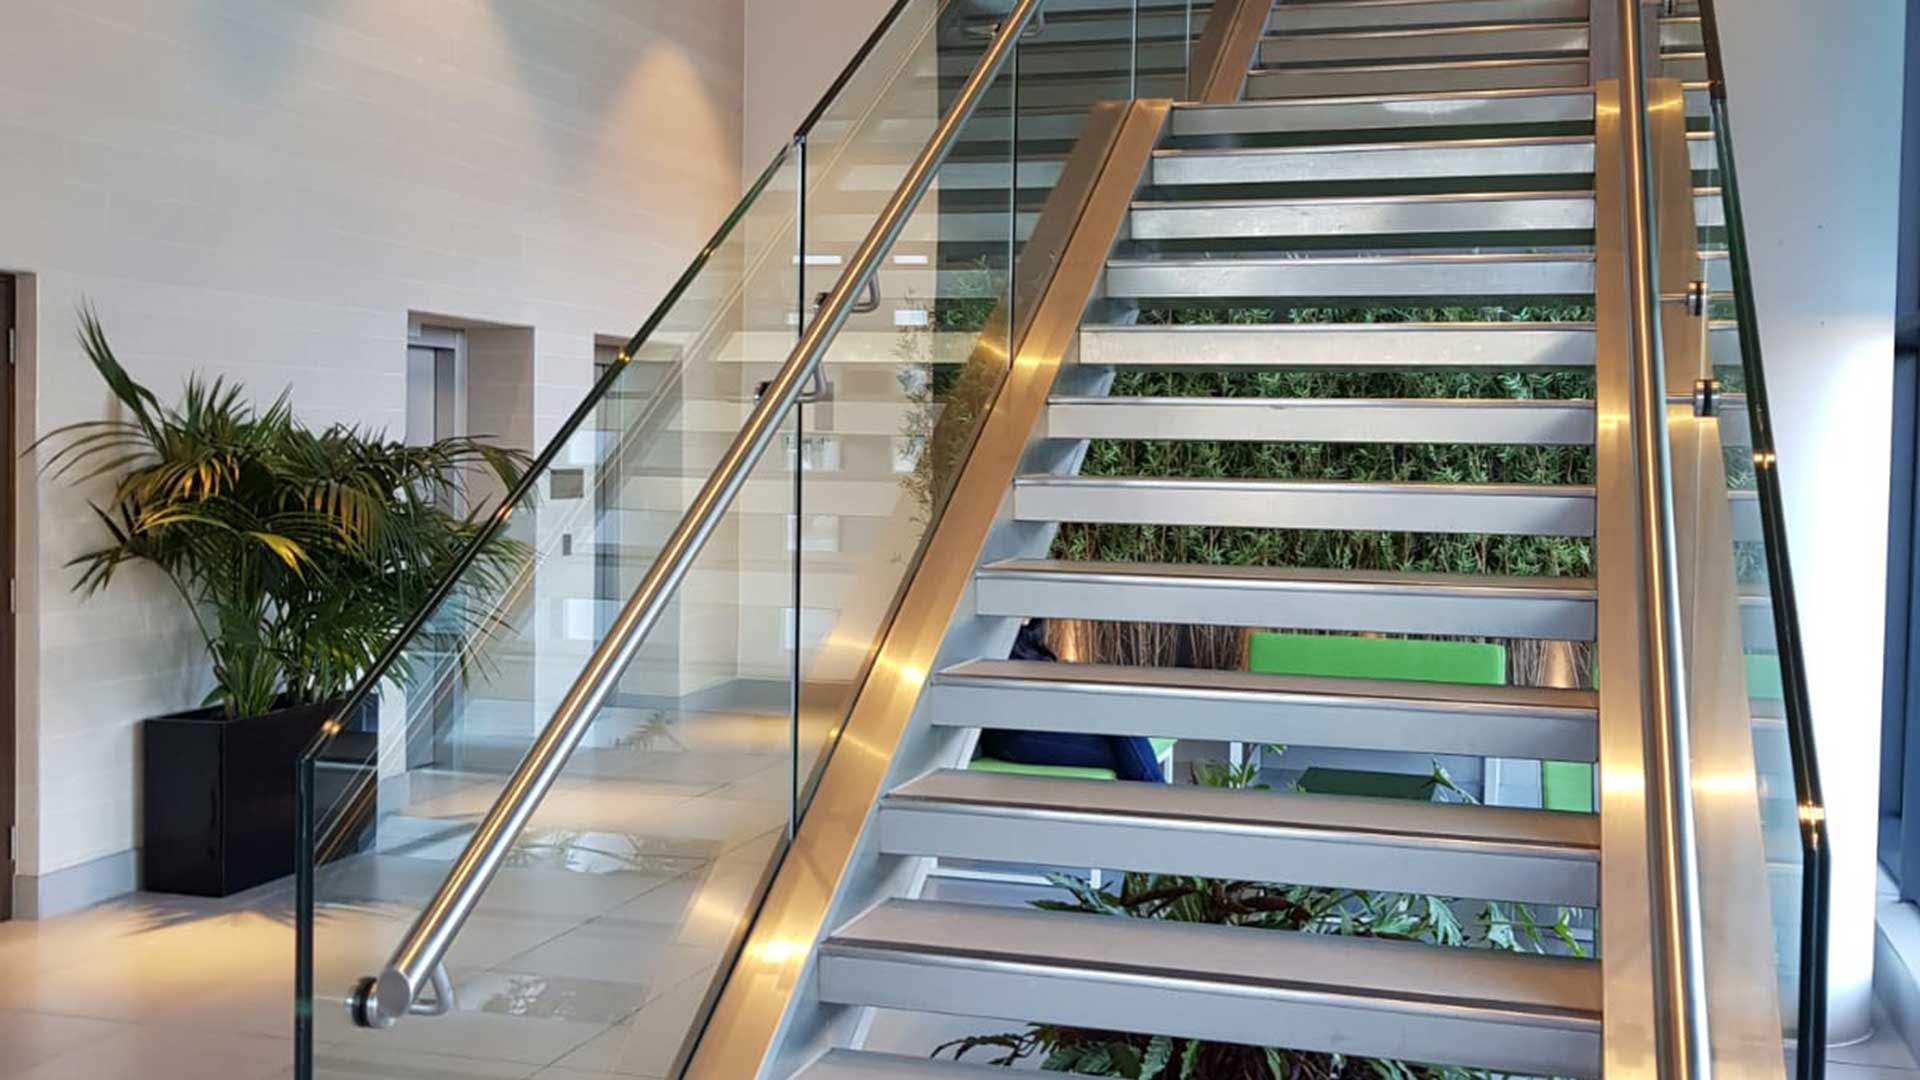 Shiny office staircase in foyer